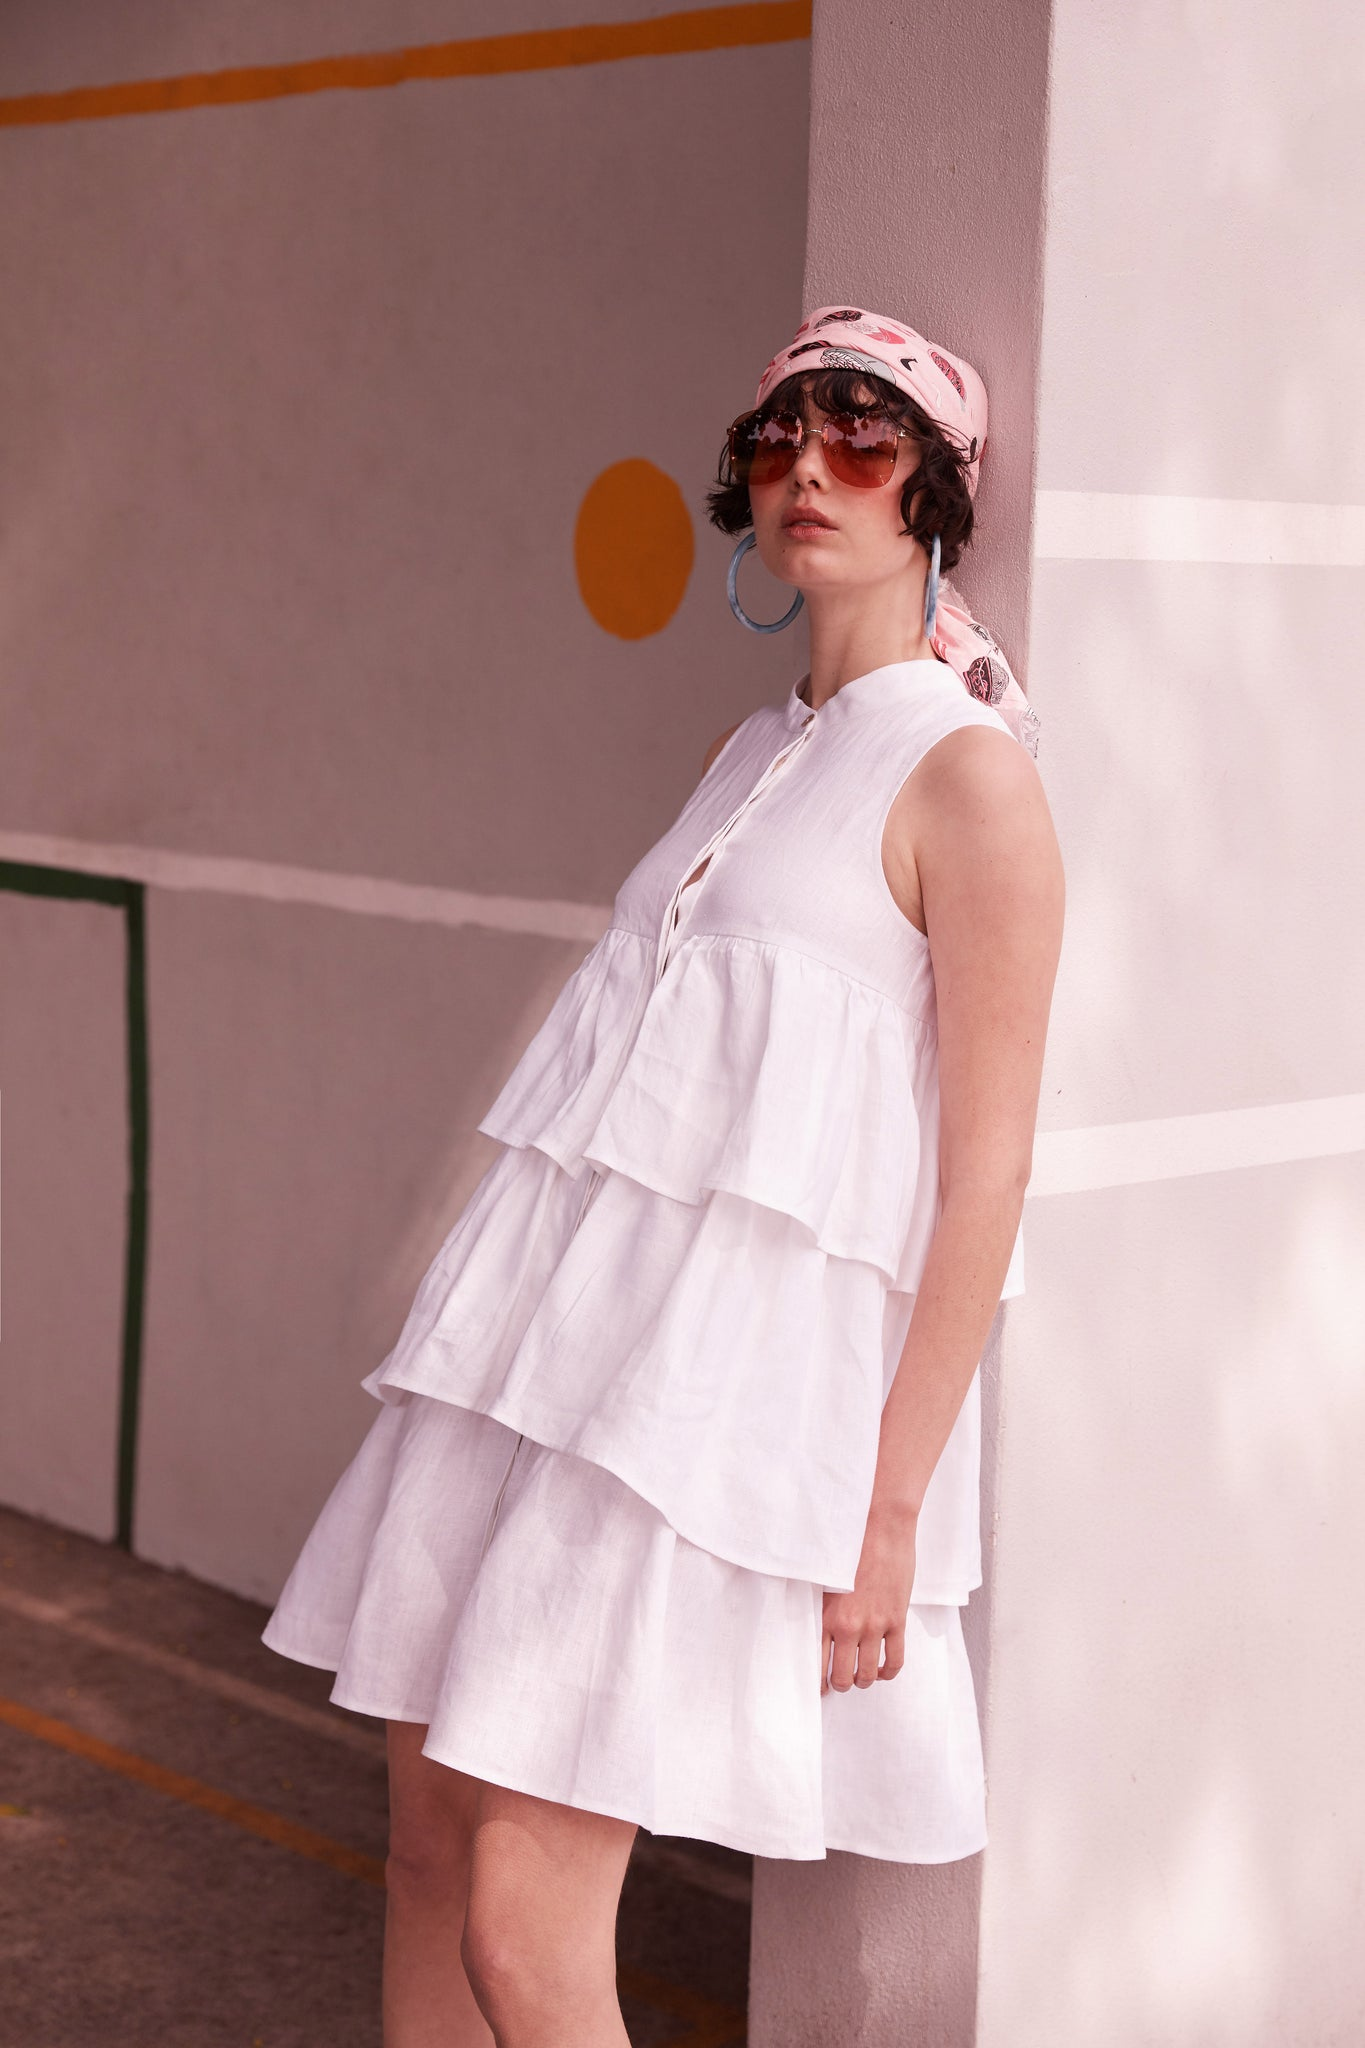 The Mala Mix Dress in White - hej hej